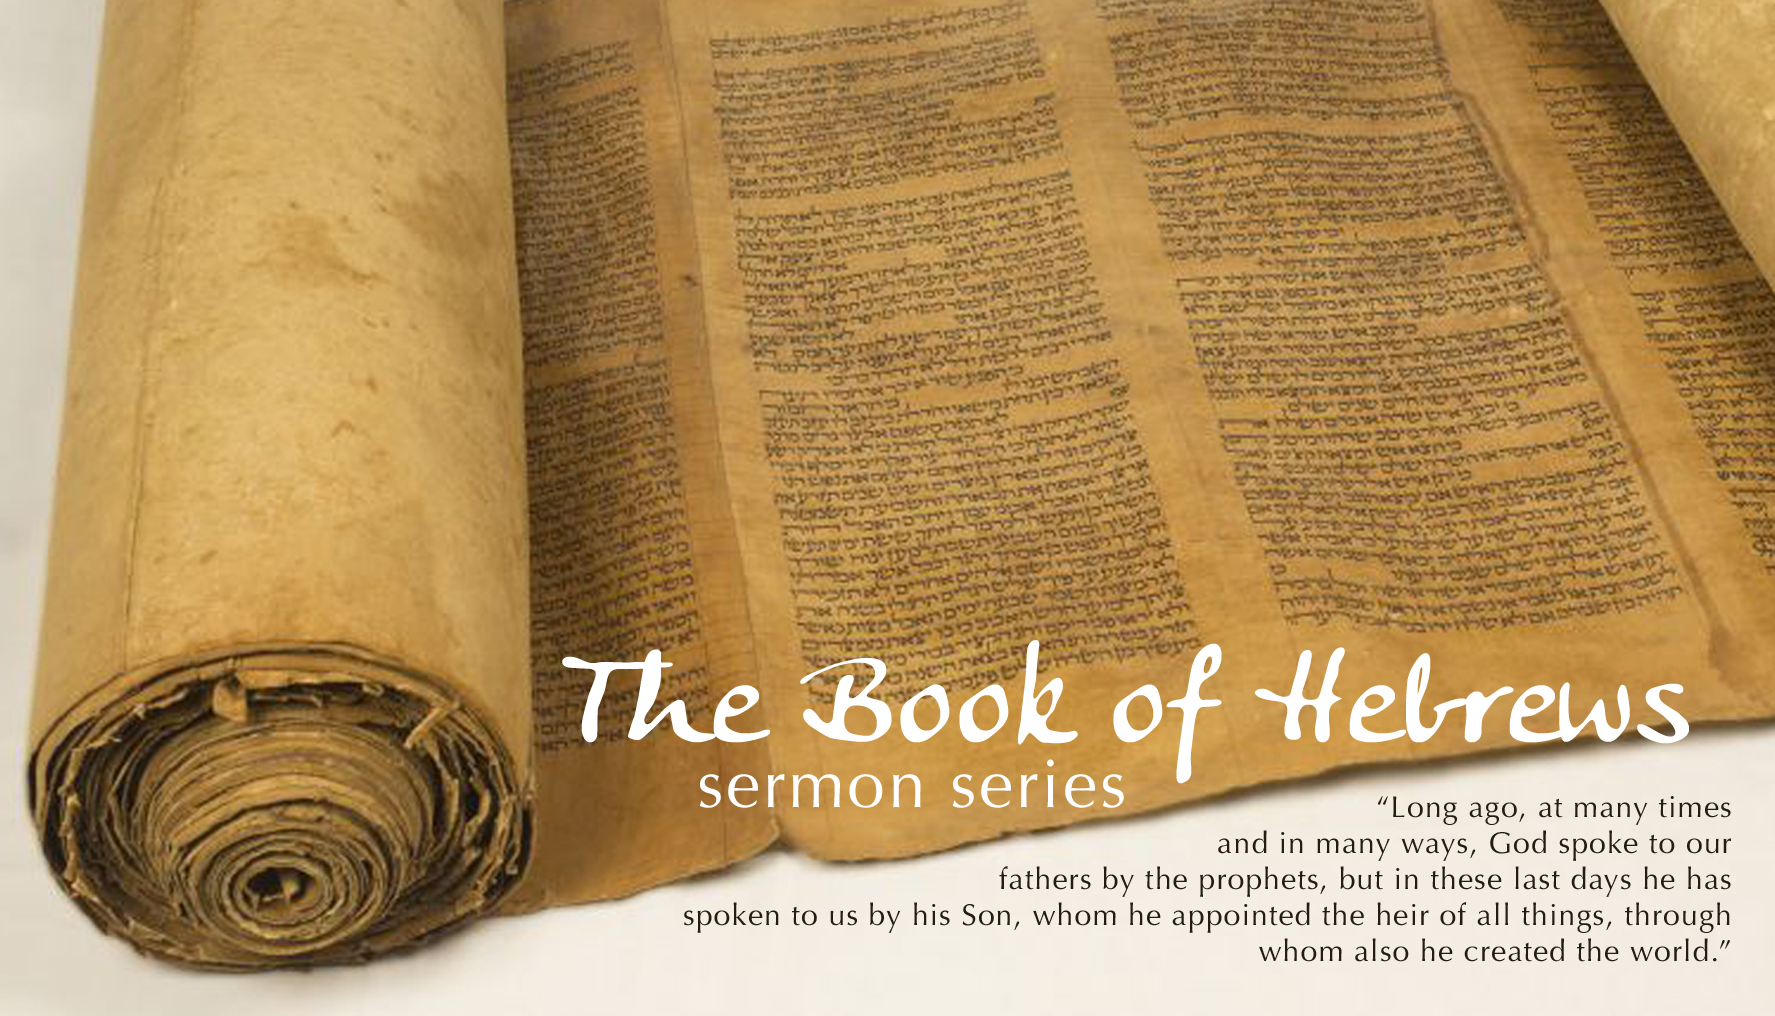 images/HomeSlide/sermon_series-Heb.png